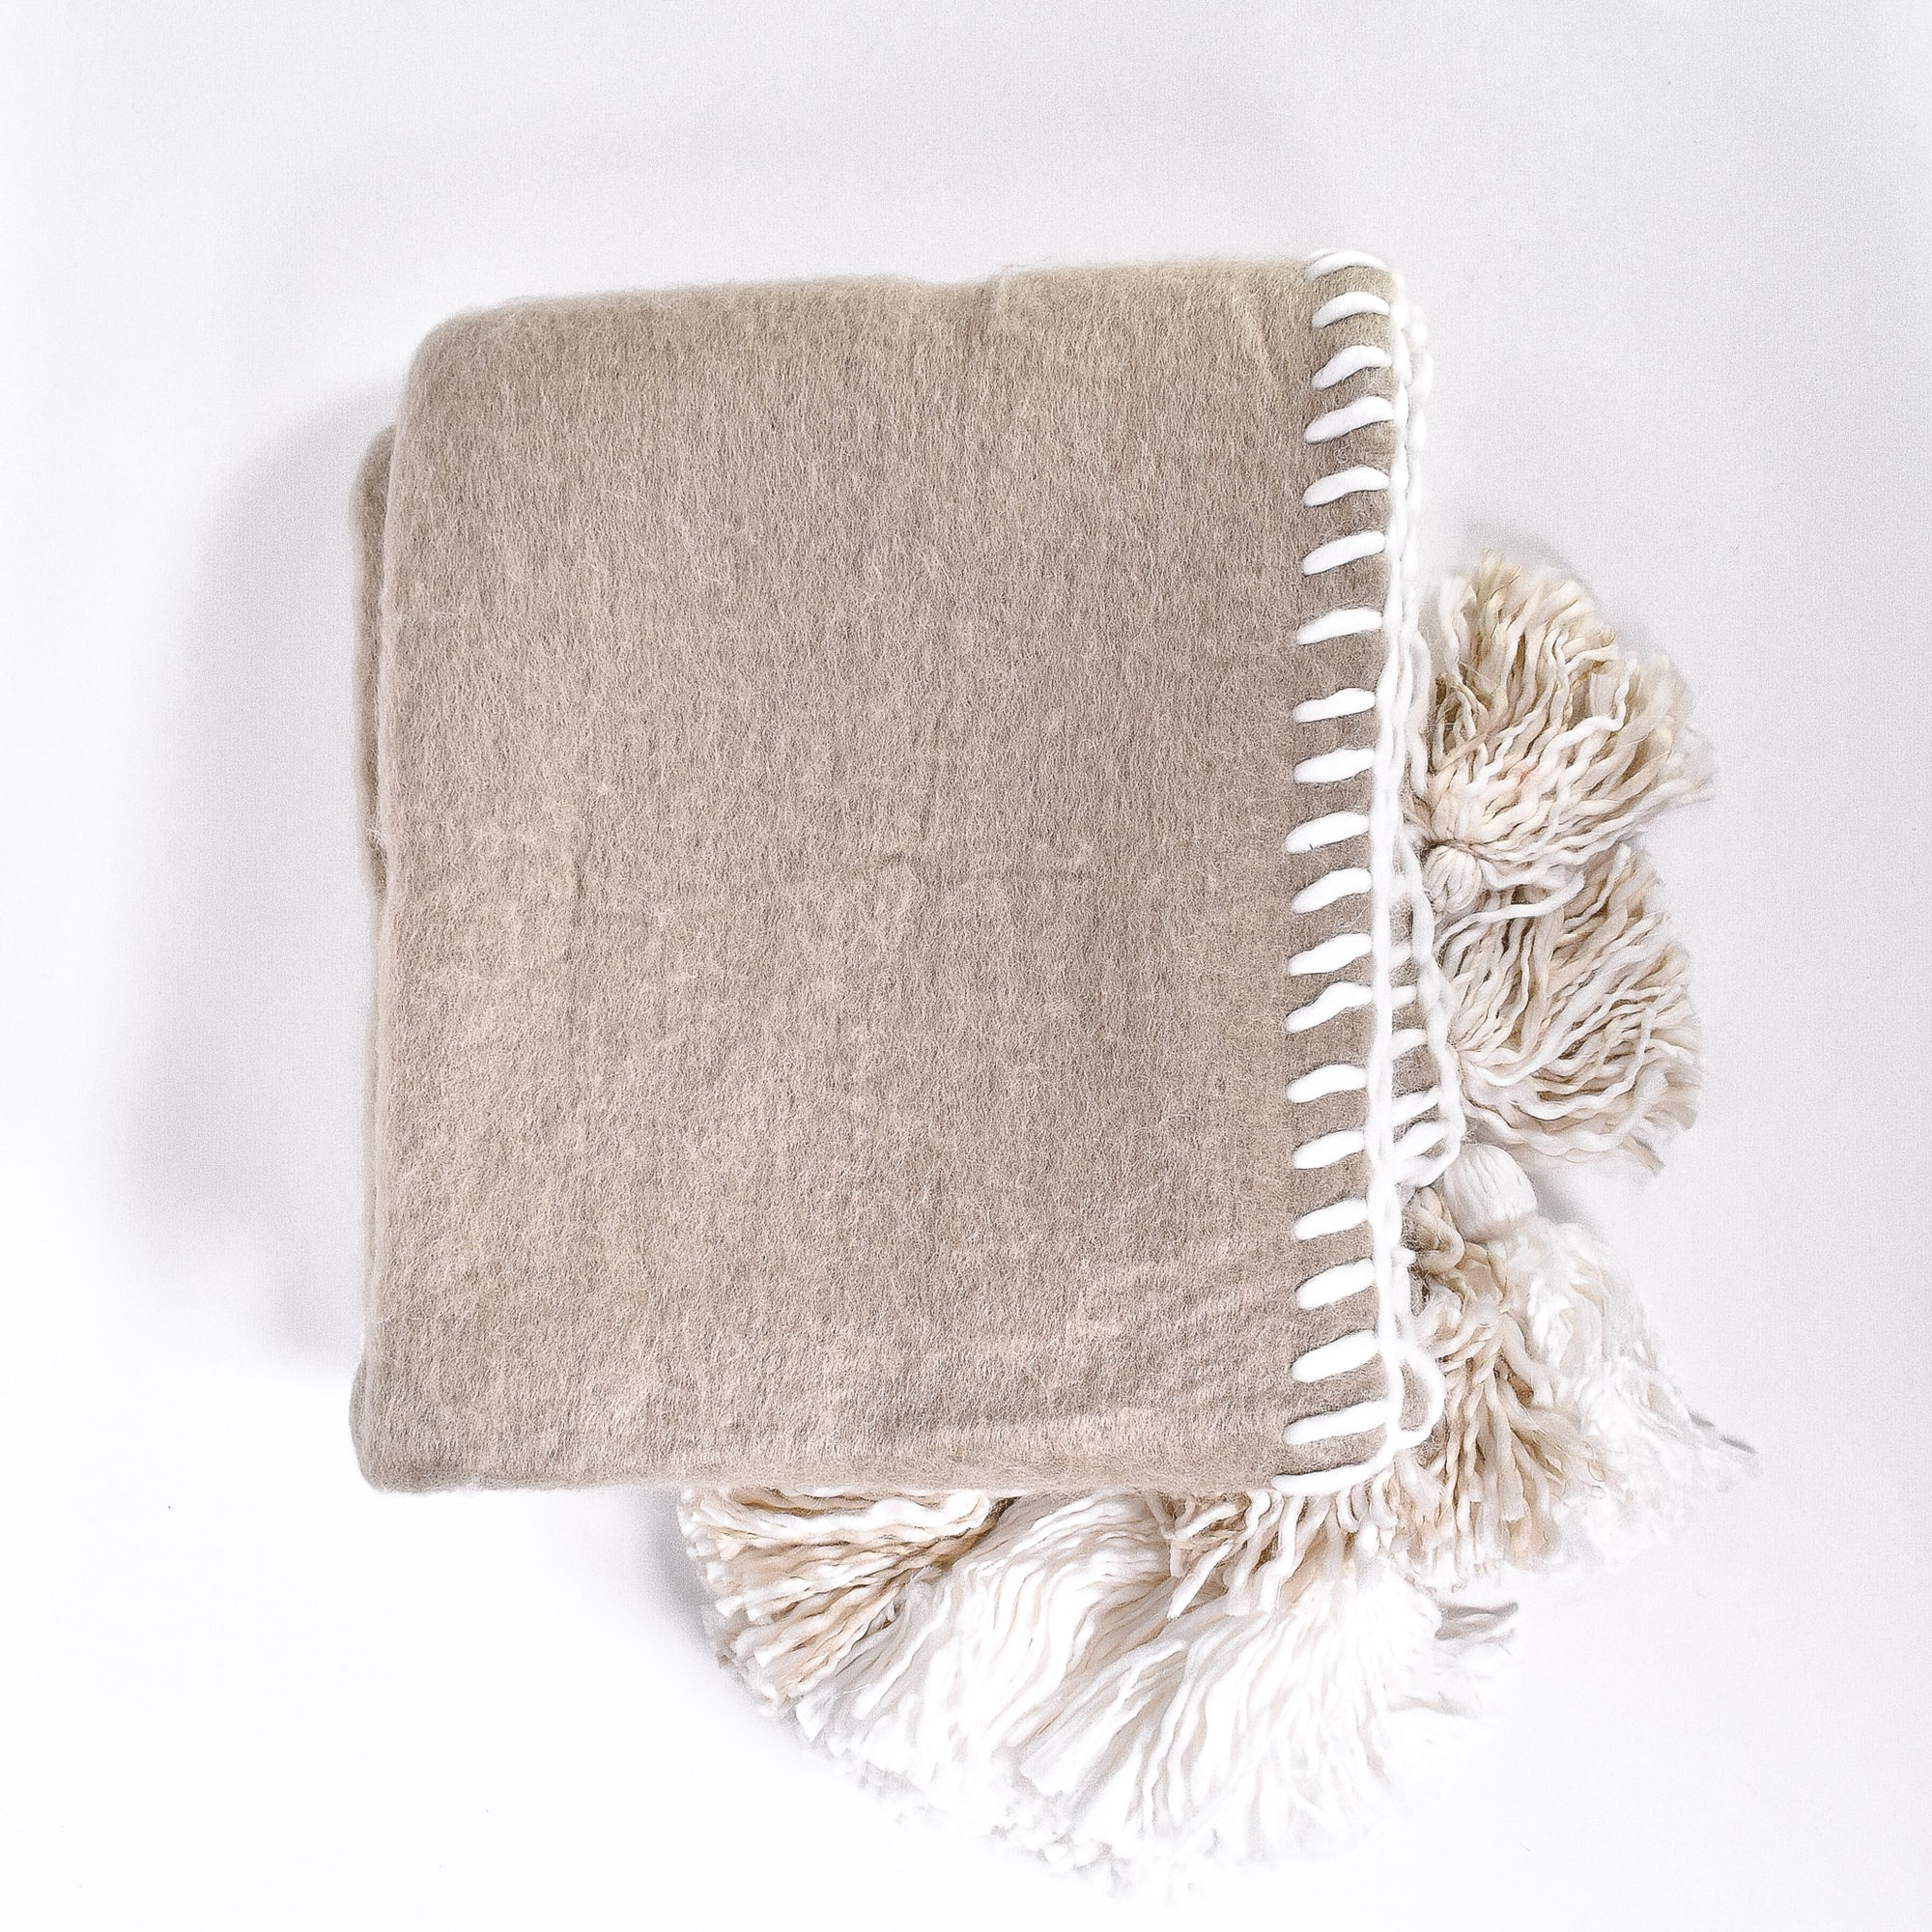 Tassle & Trim Throw - Rug & Weave